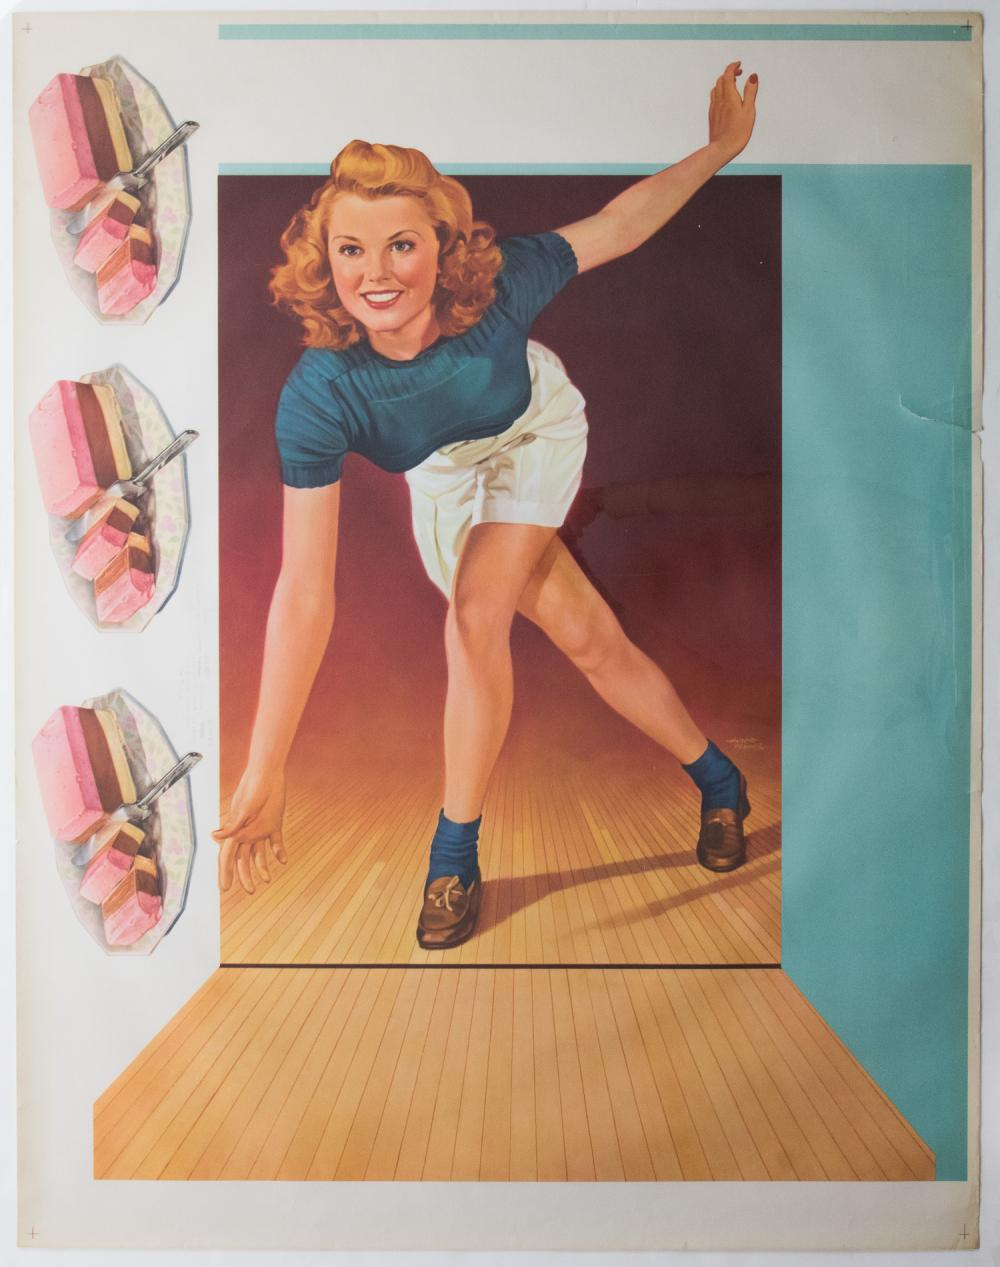 VINTAGE ICE CREAM AND BOWLING POSTER